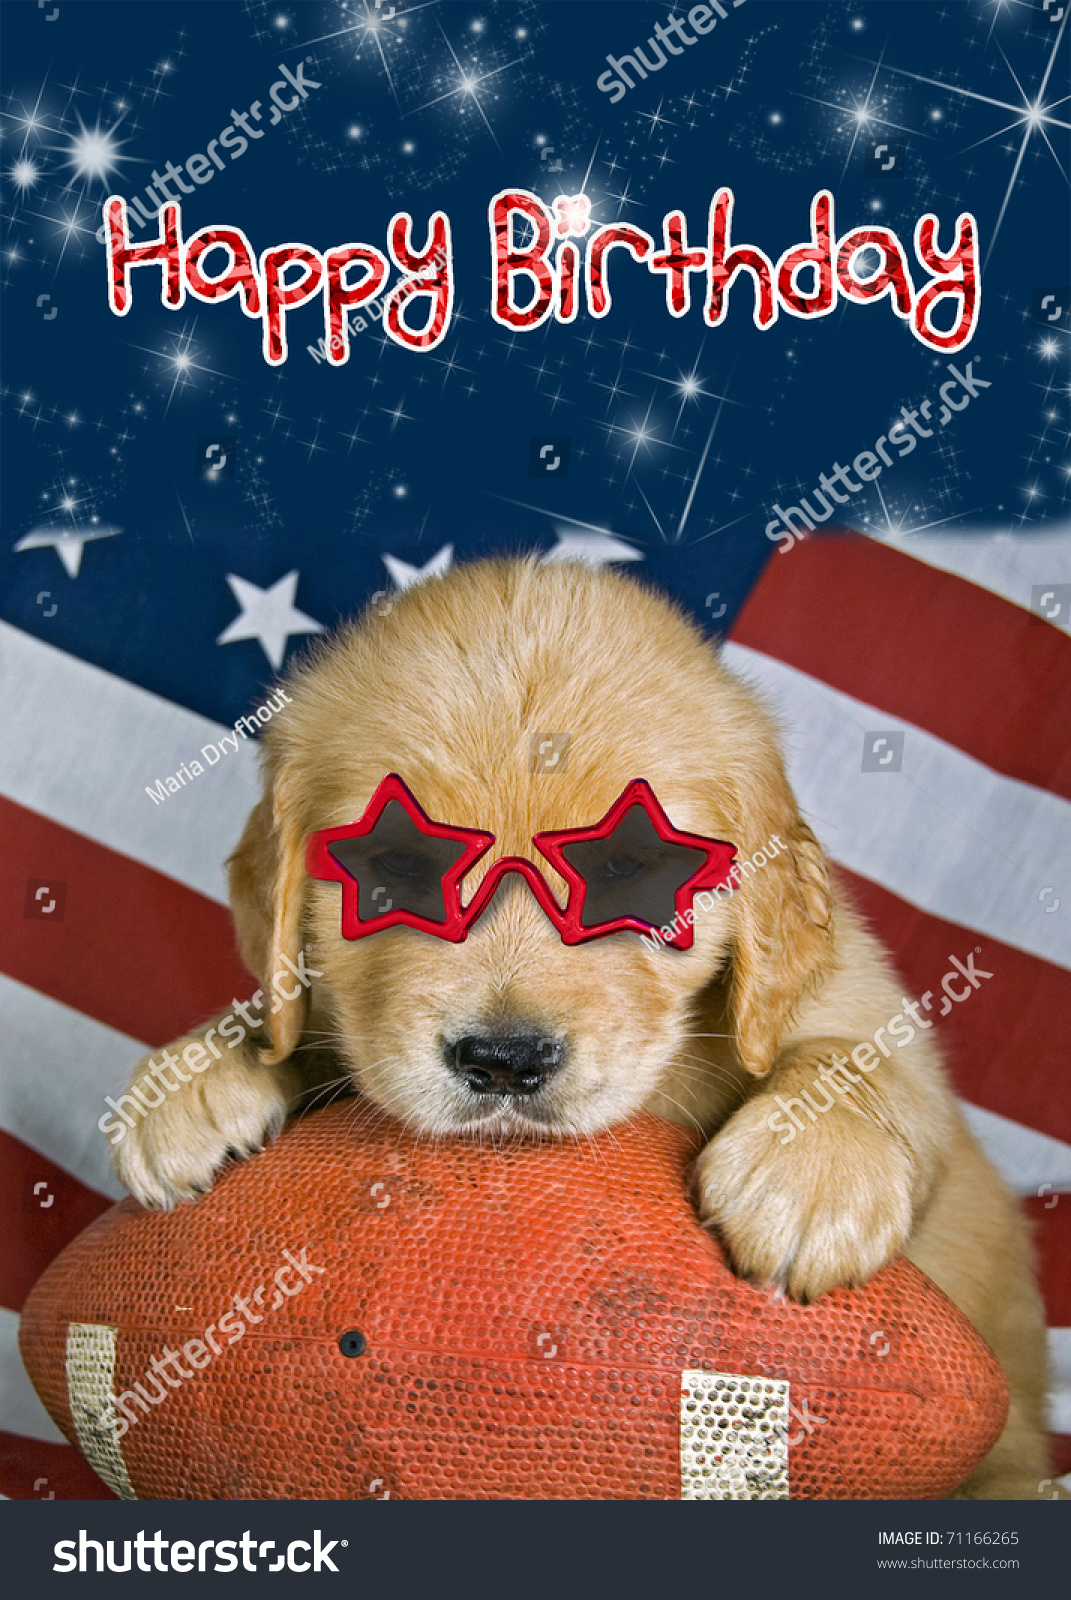 Royalty Free Stock Illustration of Golden Retriever Pup On Football ... 4e83c0fbae76